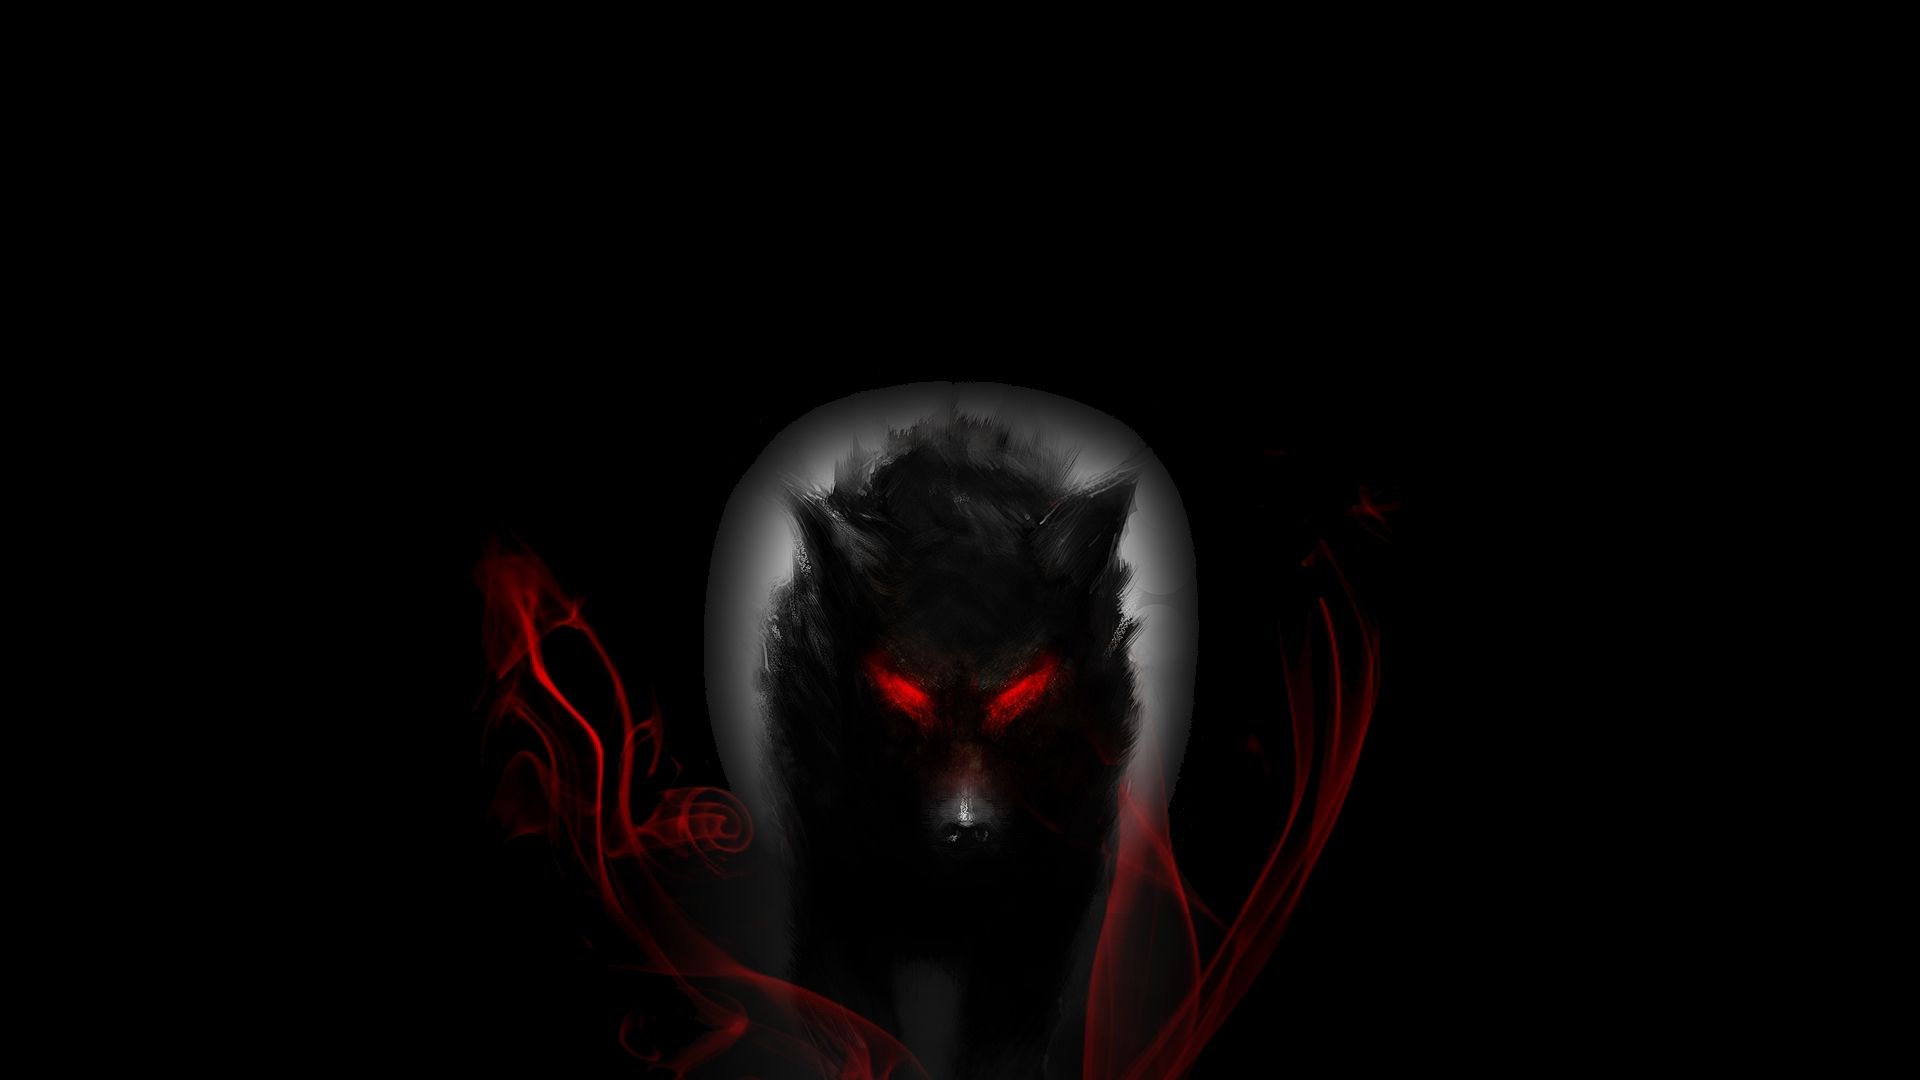 Black Wolf With Glowing Red Eyes Hd Wallpaper Background Image 1920x1080 Id 493414 Wallpaper Abyss